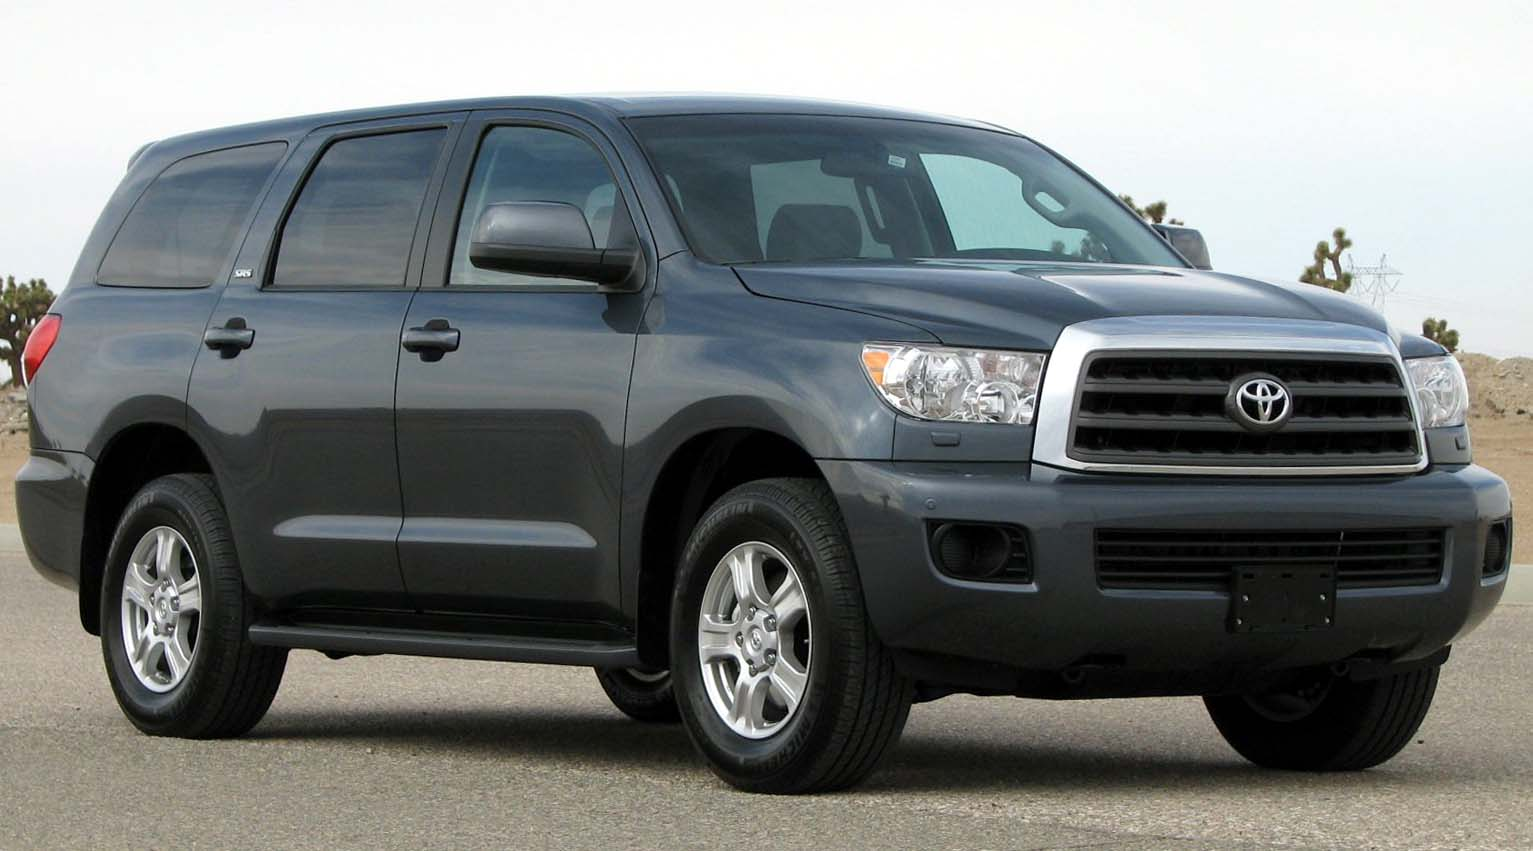 Toyota Sequoia Tractor Amp Construction Plant Wiki The